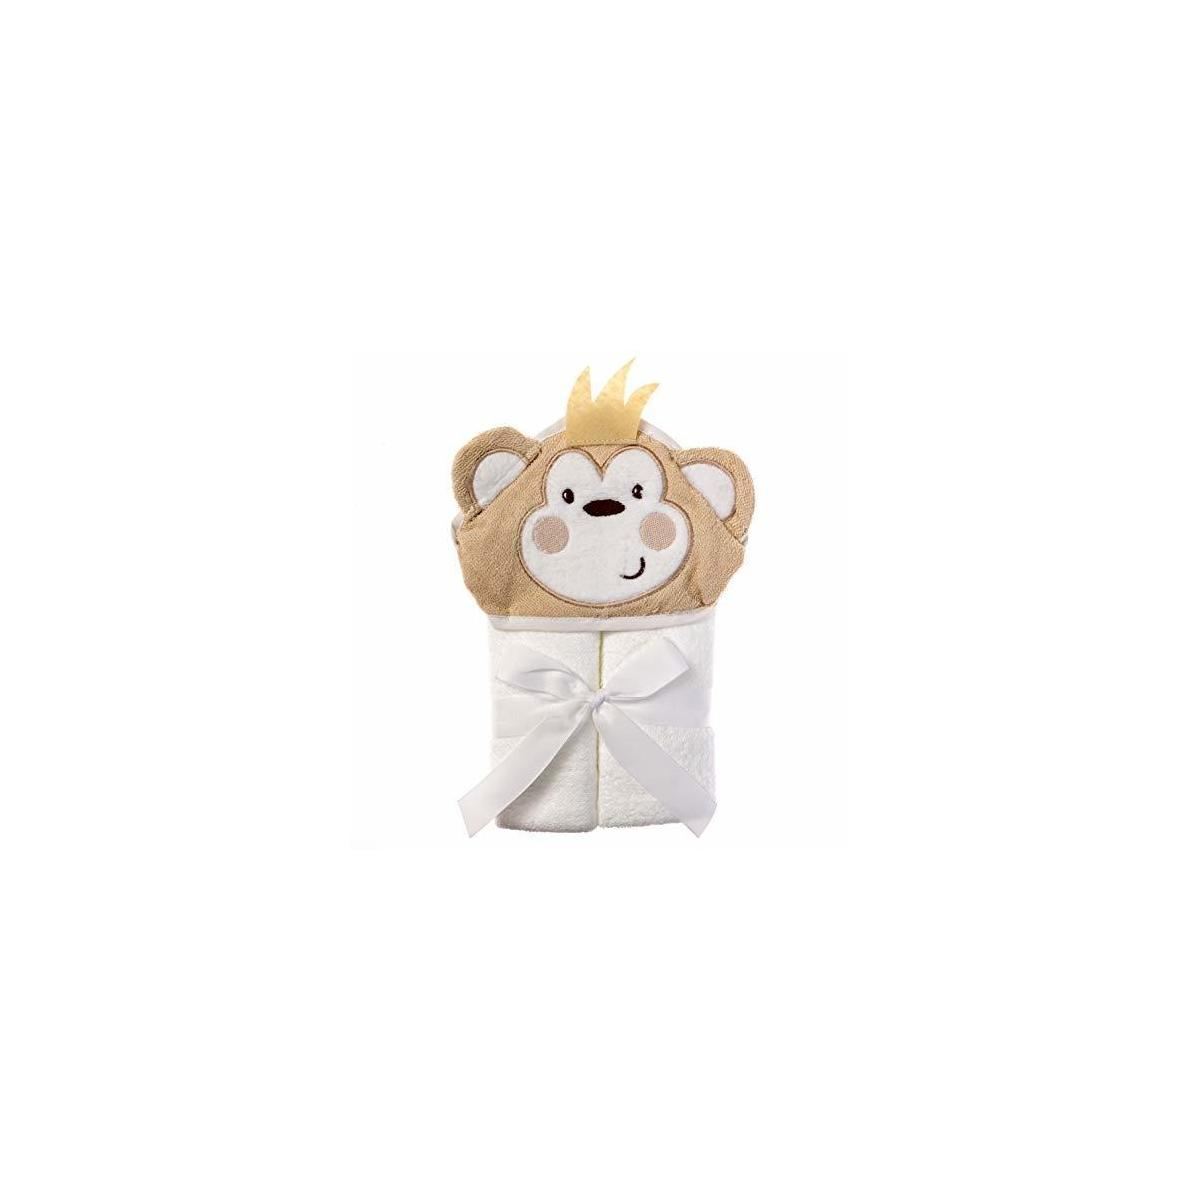 REBATE ONLY FOR monkey----Hooded Baby Towel with 100% Soft Cotton for Boys and Girls - Cute 3D Animal Baby Bath Towel Extra Soft Hooded Towels for Baby Perfect Baby Gifts and Baby Towels - Baby Towel